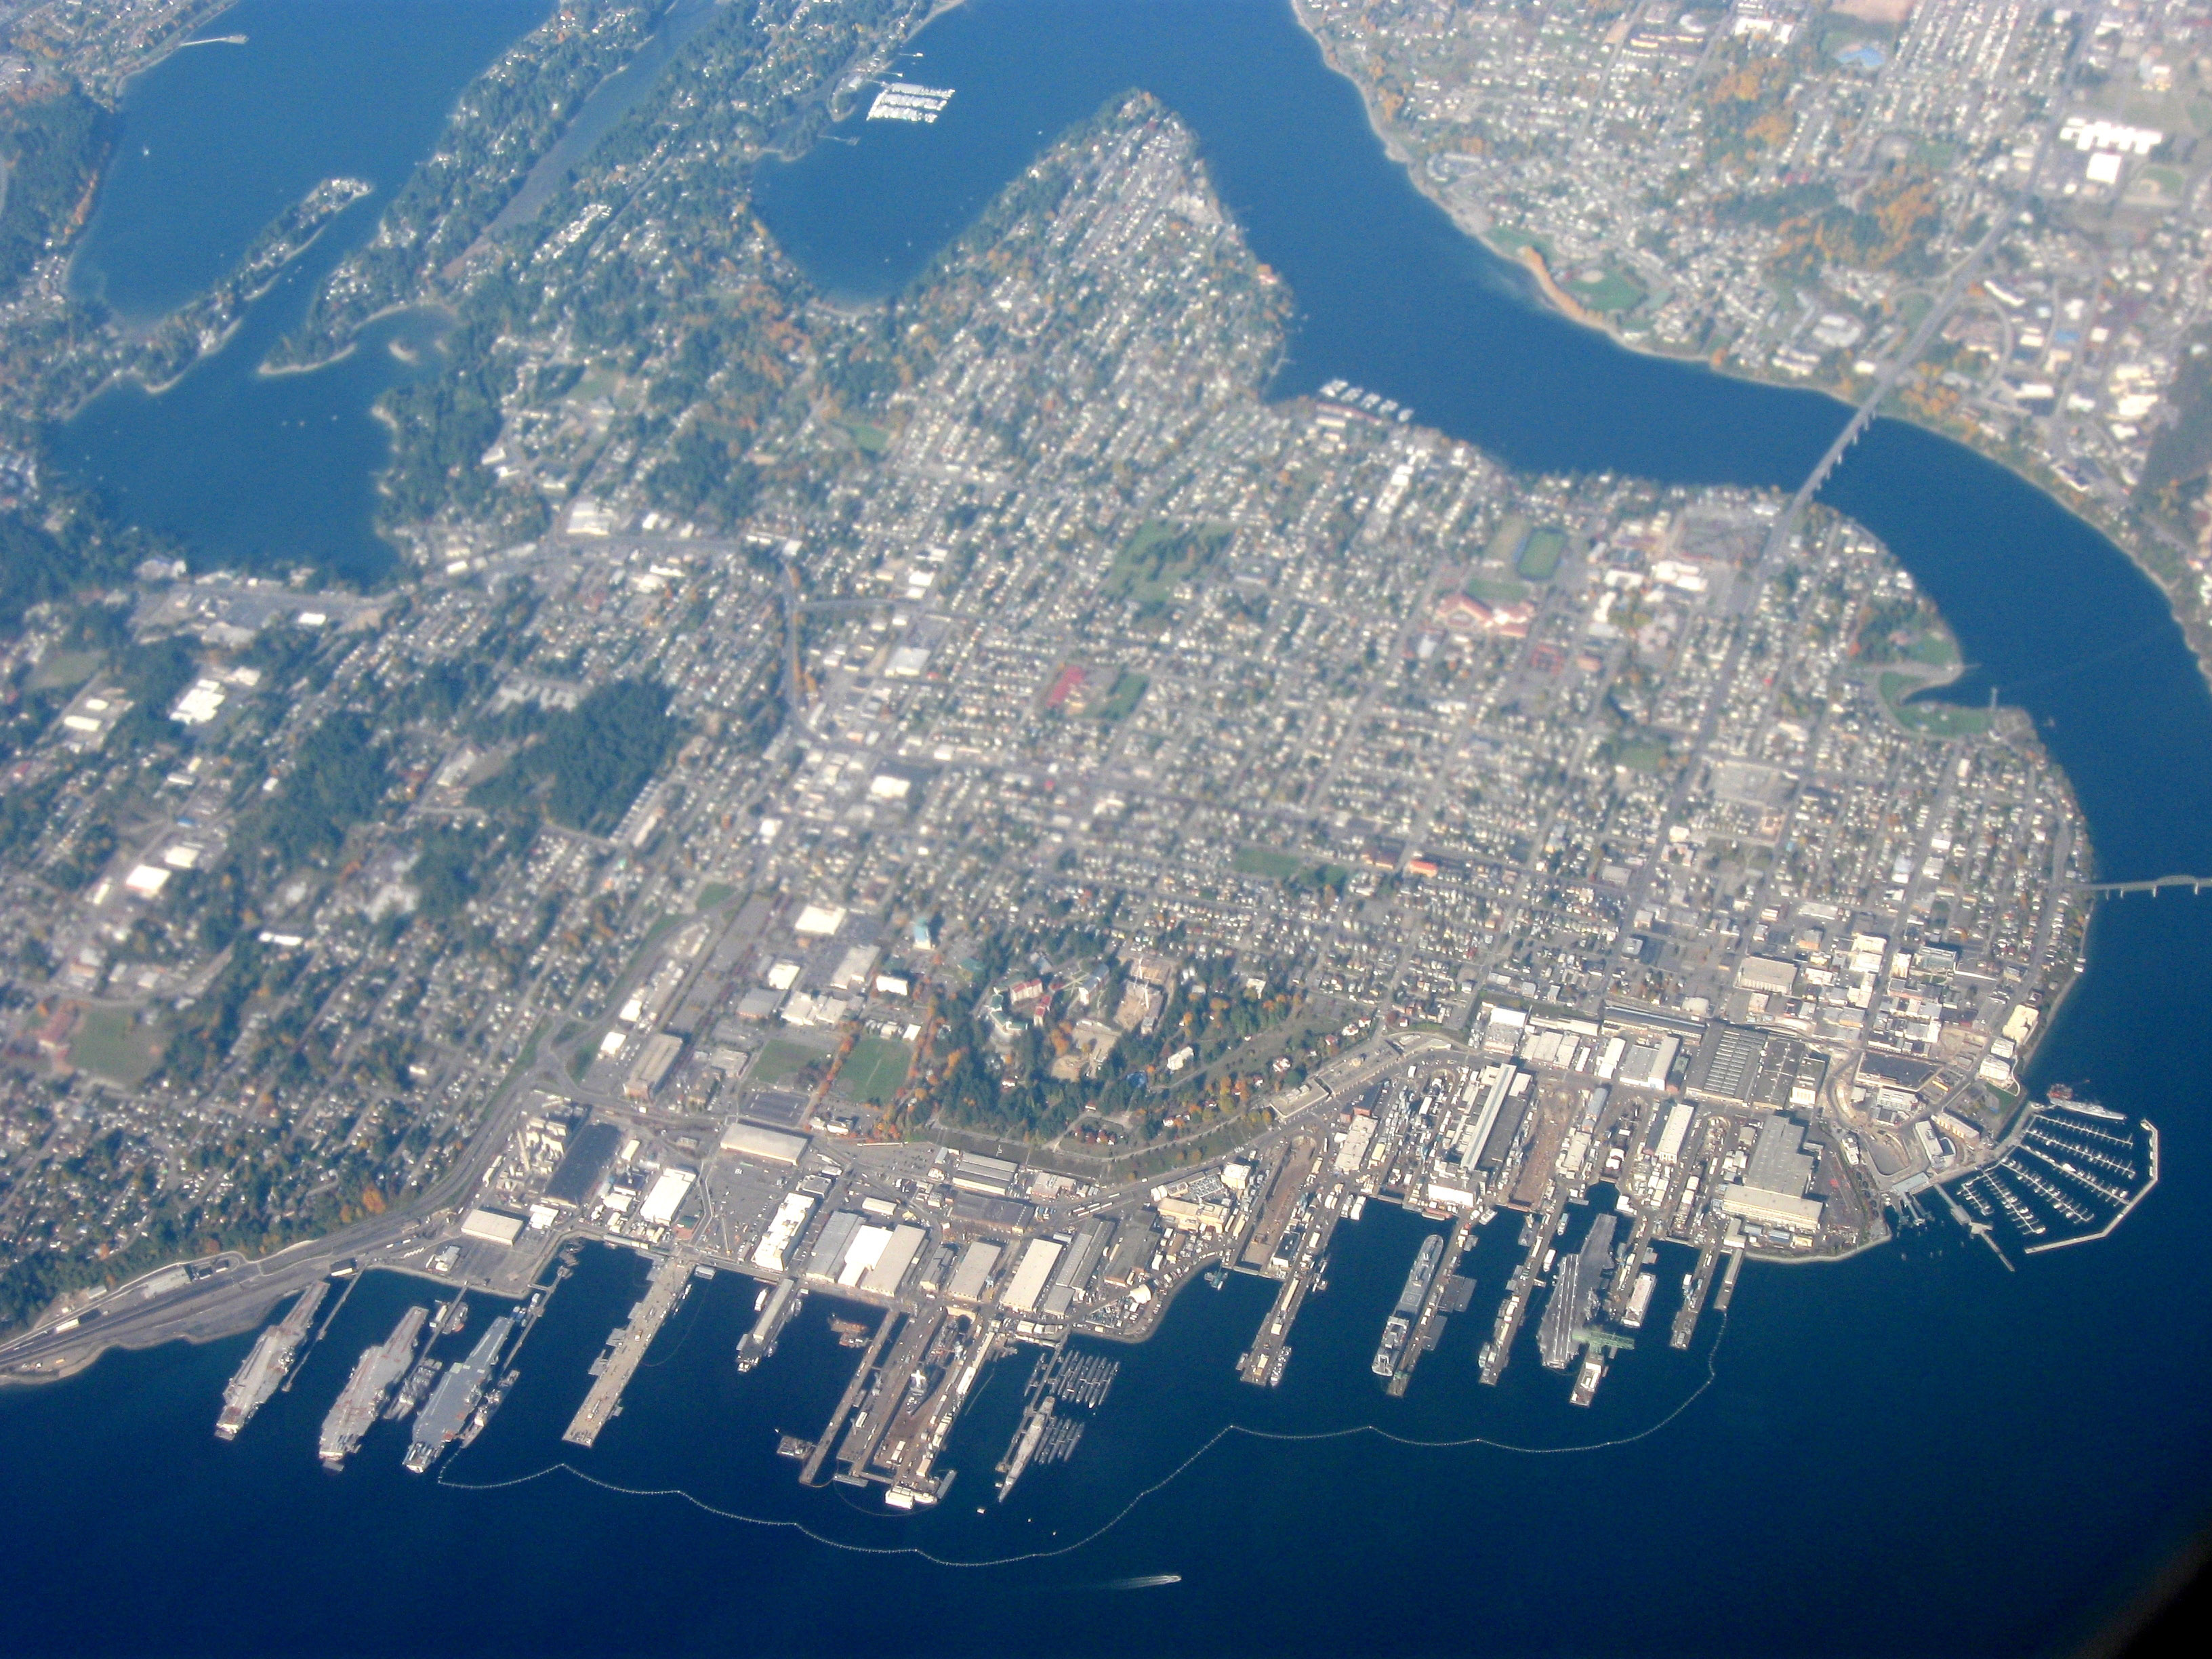 Aerial View Of The City With Puget Sound Naval Shipyard In